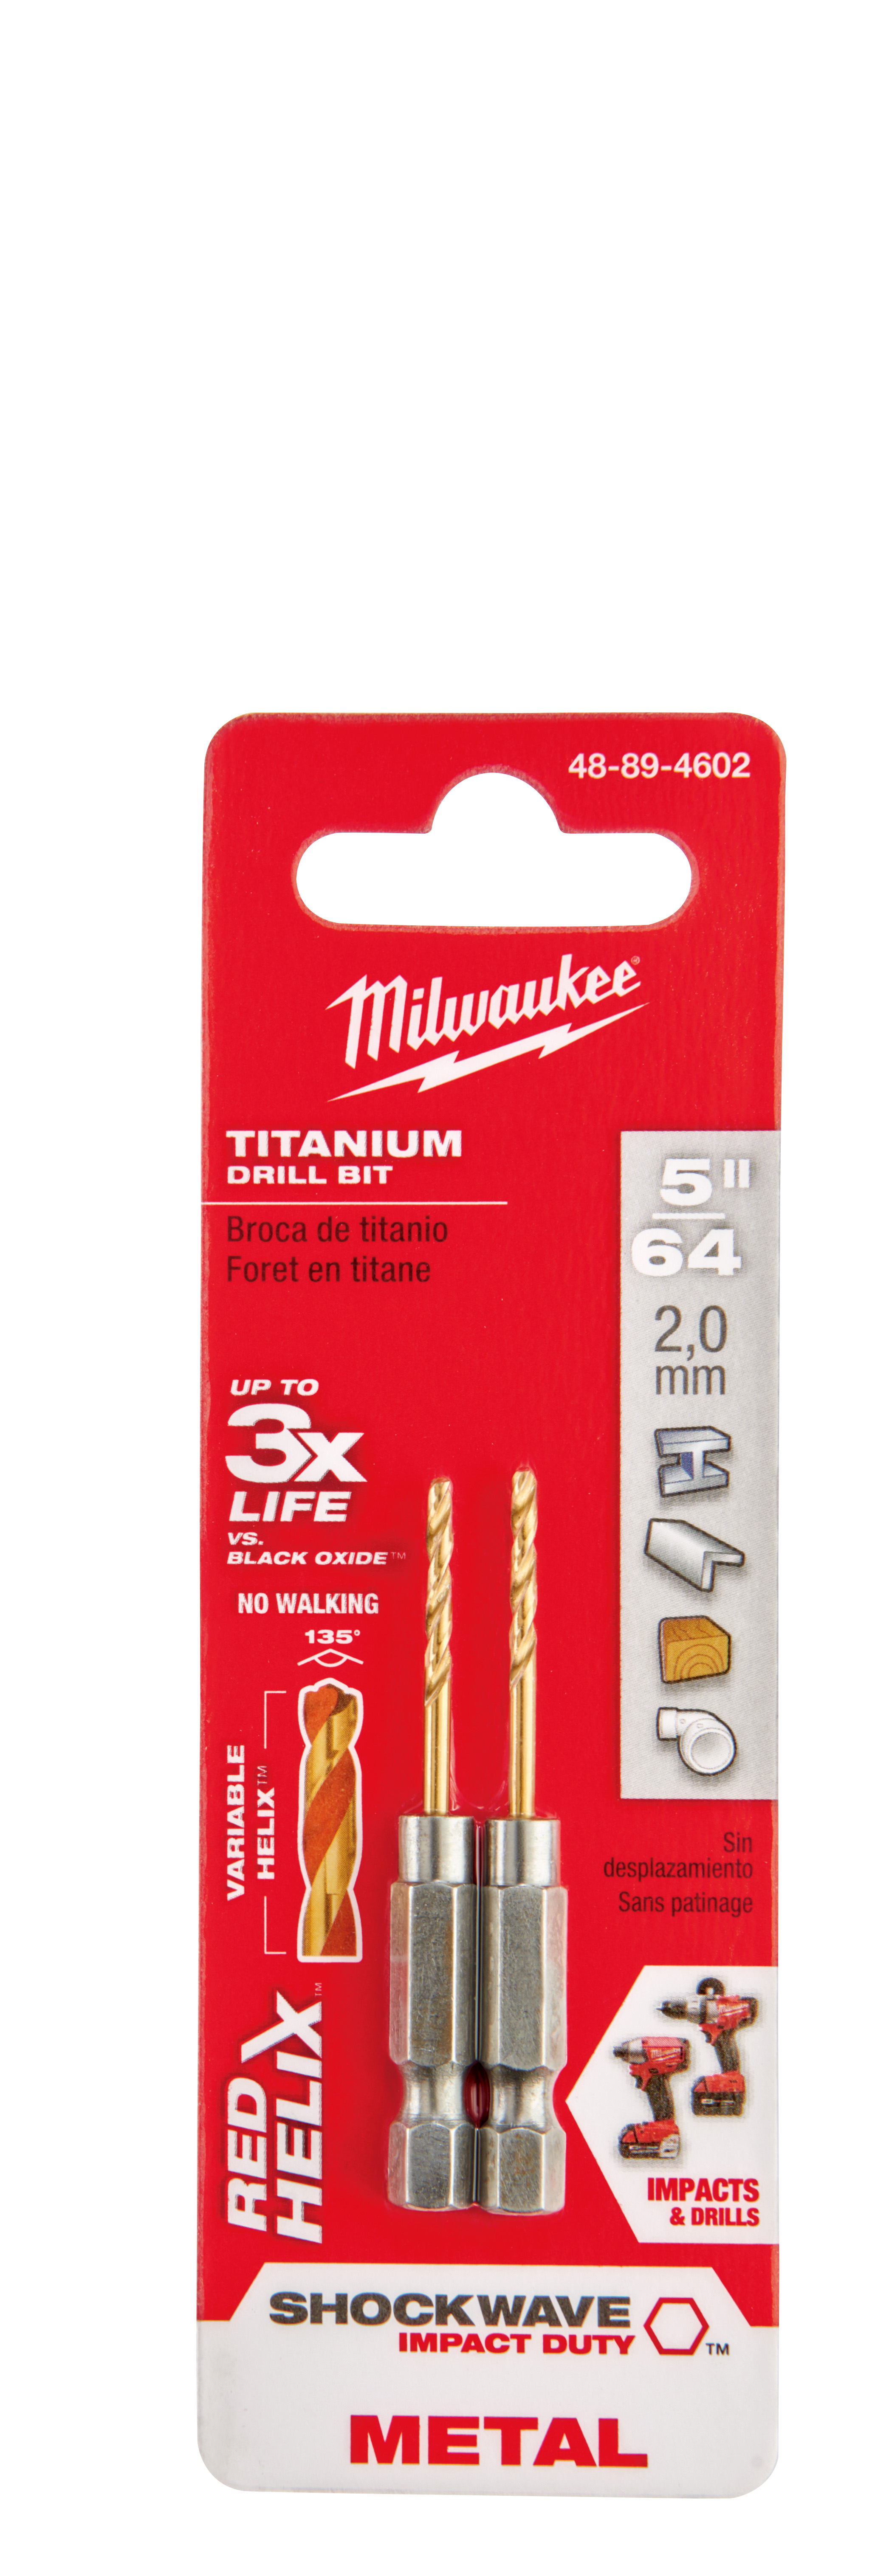 Milwaukee® 48-89-4602 SHOCKWAVE™ Hex Shank Impact Drill Bit, 5/64 in Drill - Fraction, 0.0781 in Drill - Decimal Inch, 21/32 in D Cutting